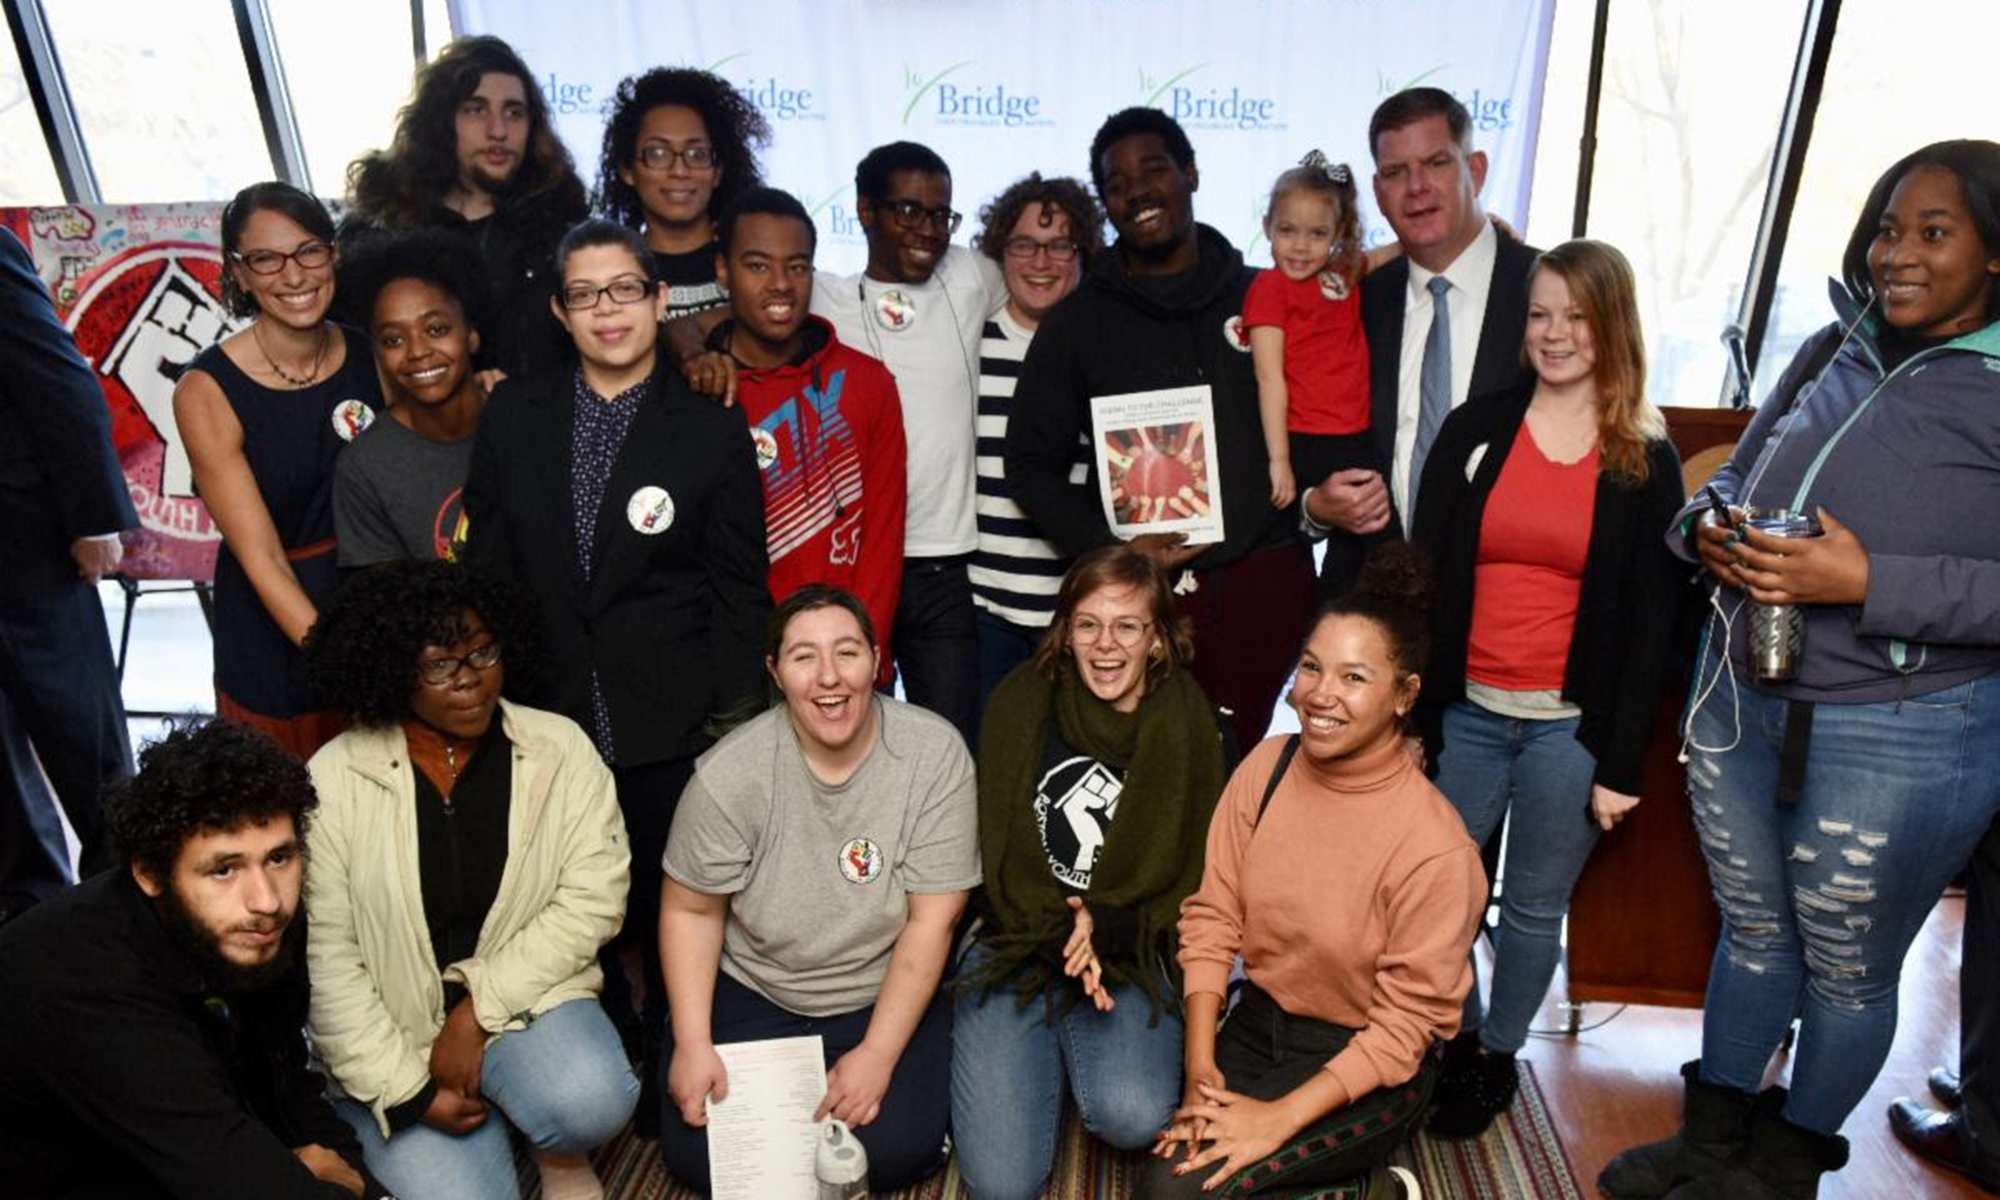 Image for mayor walsh with constituents at a press conference